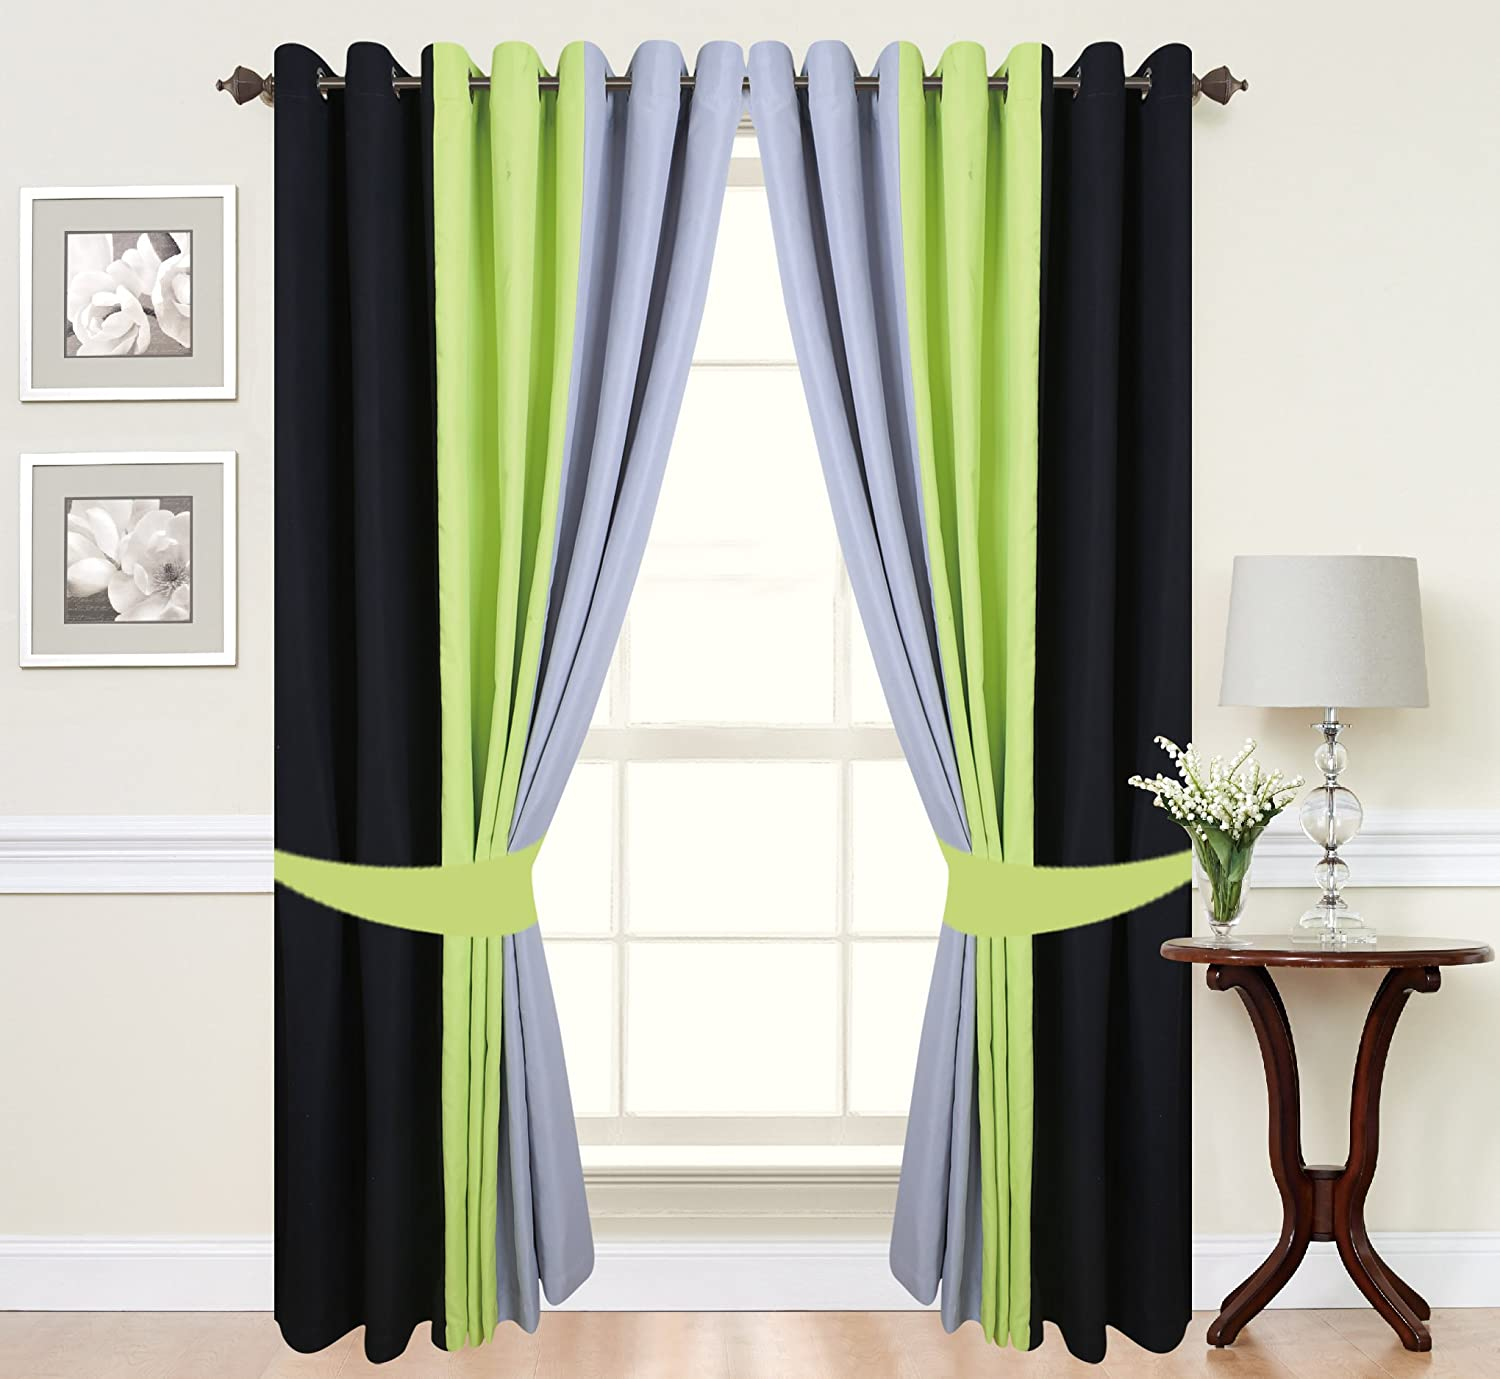 style curtains and tfile cream astonishing uncategorized of gold stockcom black sparkle voile popular